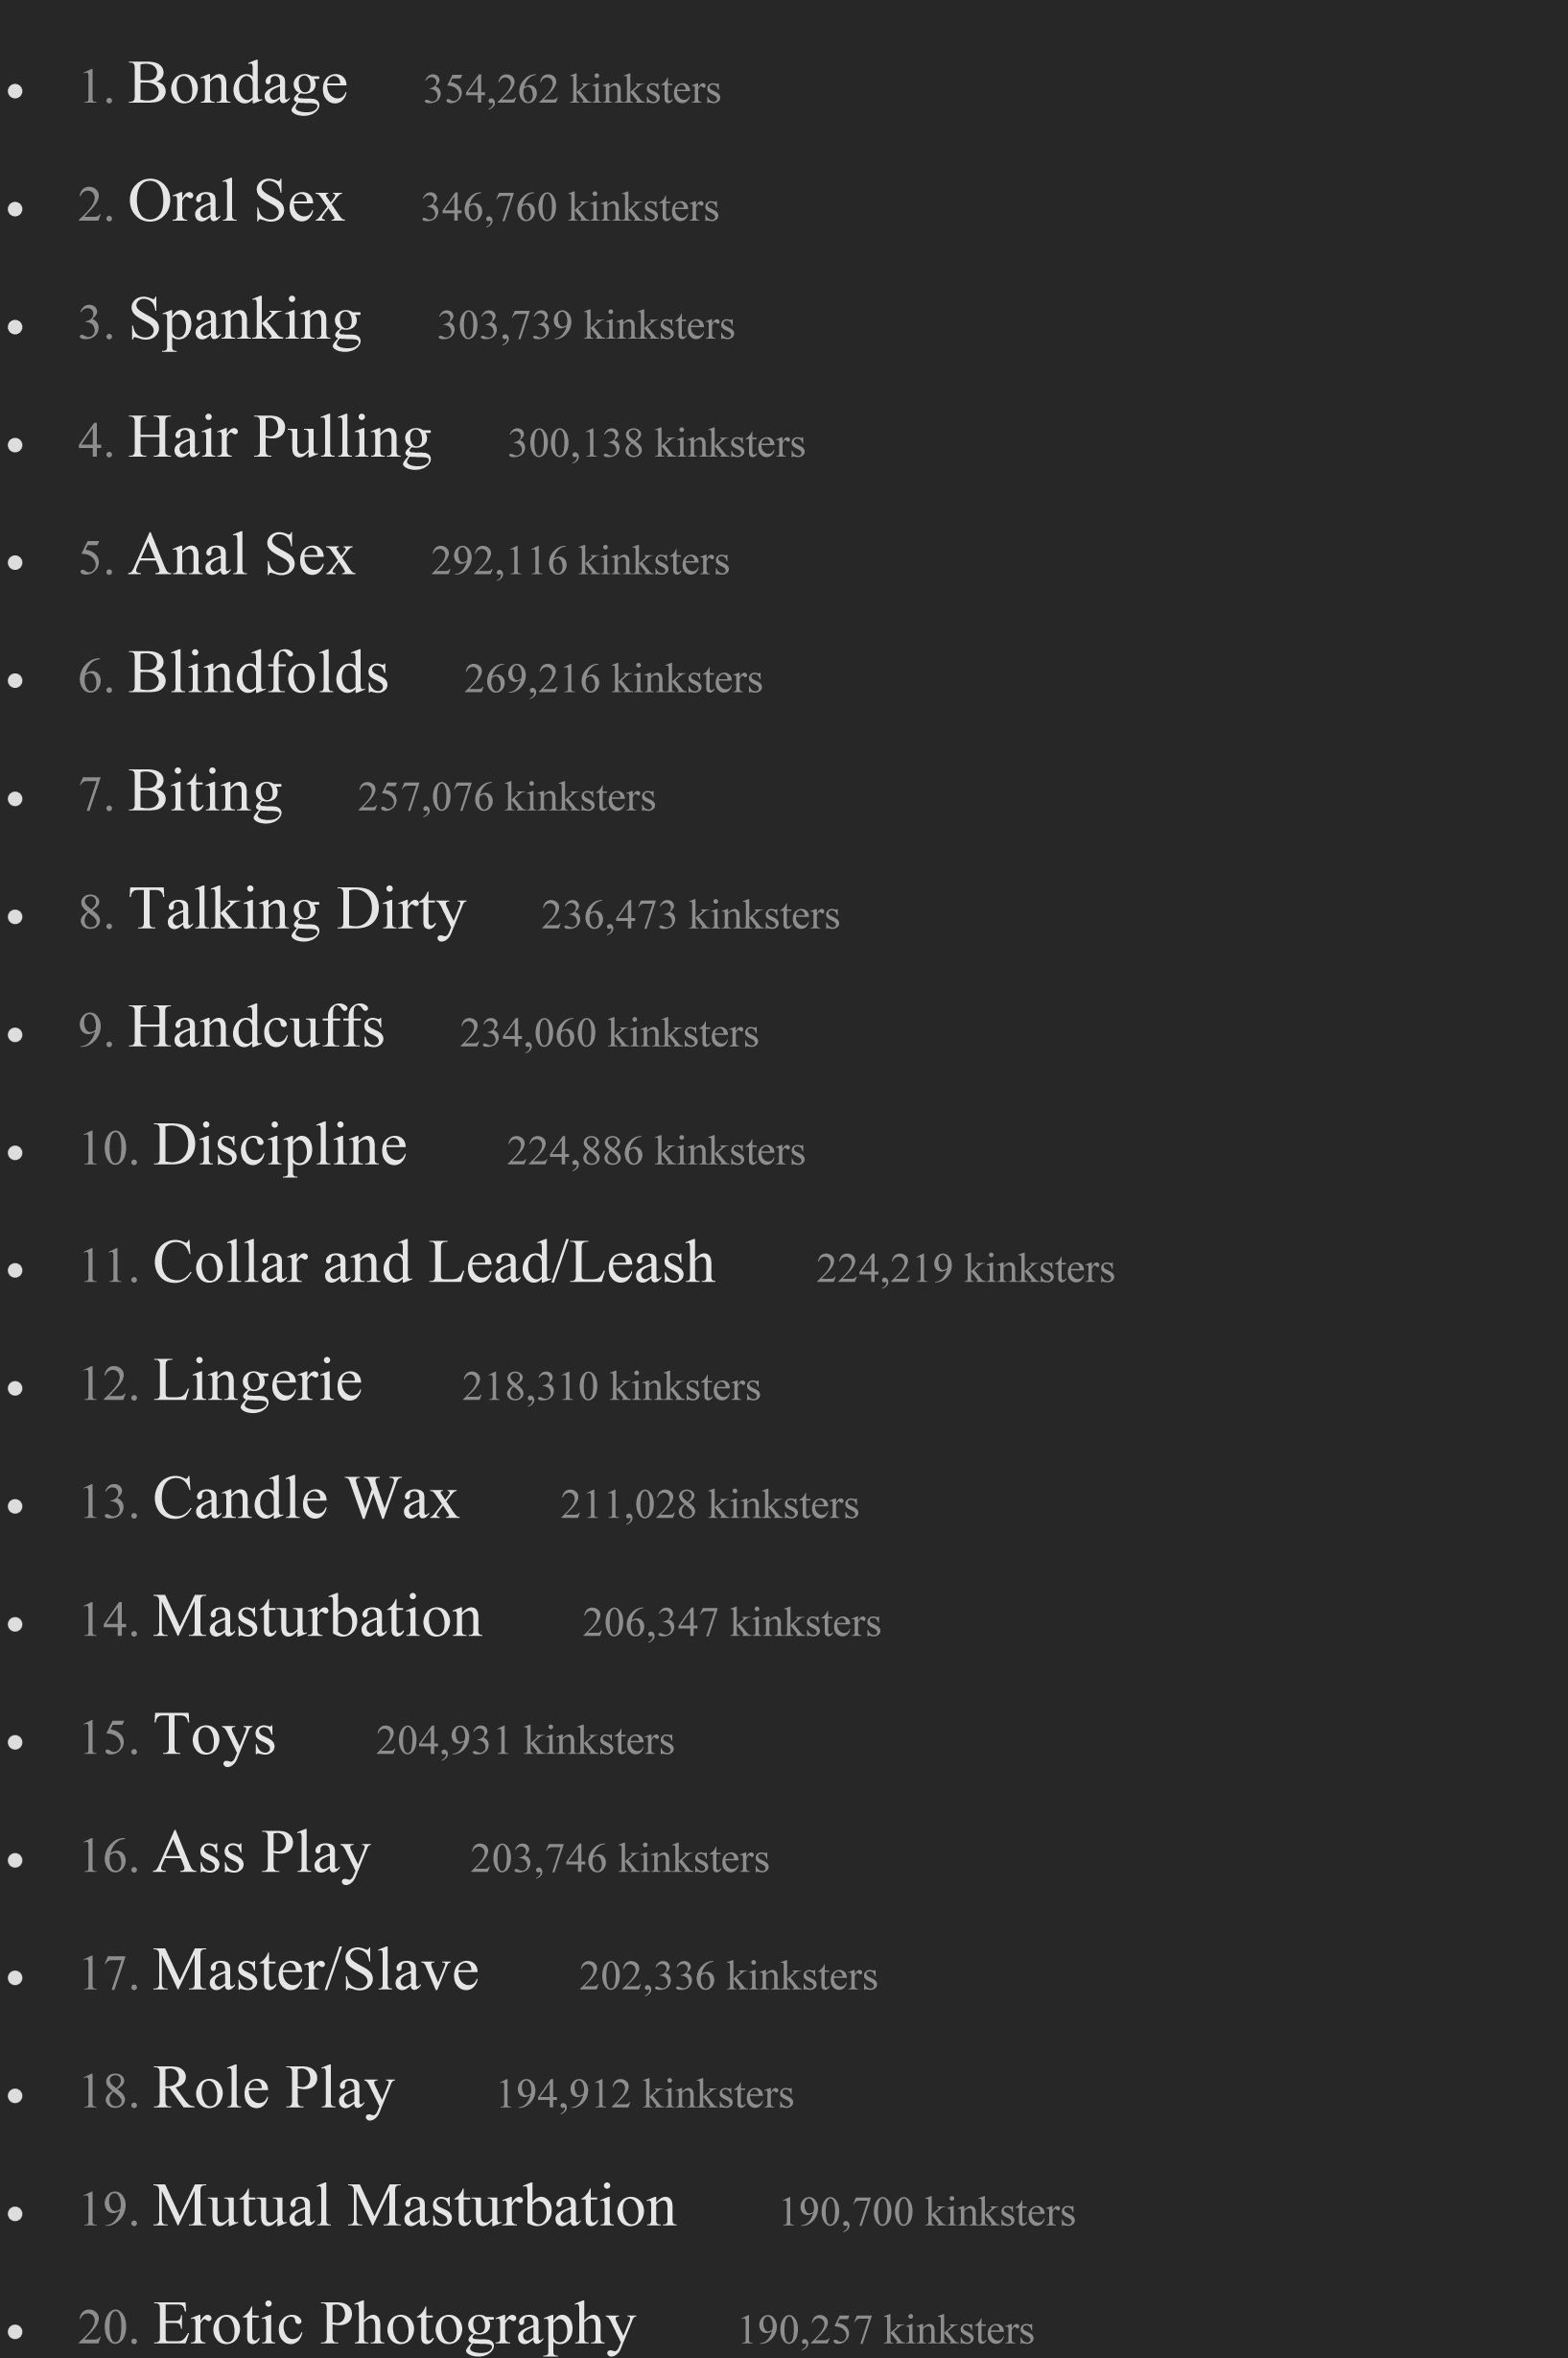 Top 20 Fetishes On Fetlife The Social Networking Site For Kinky People